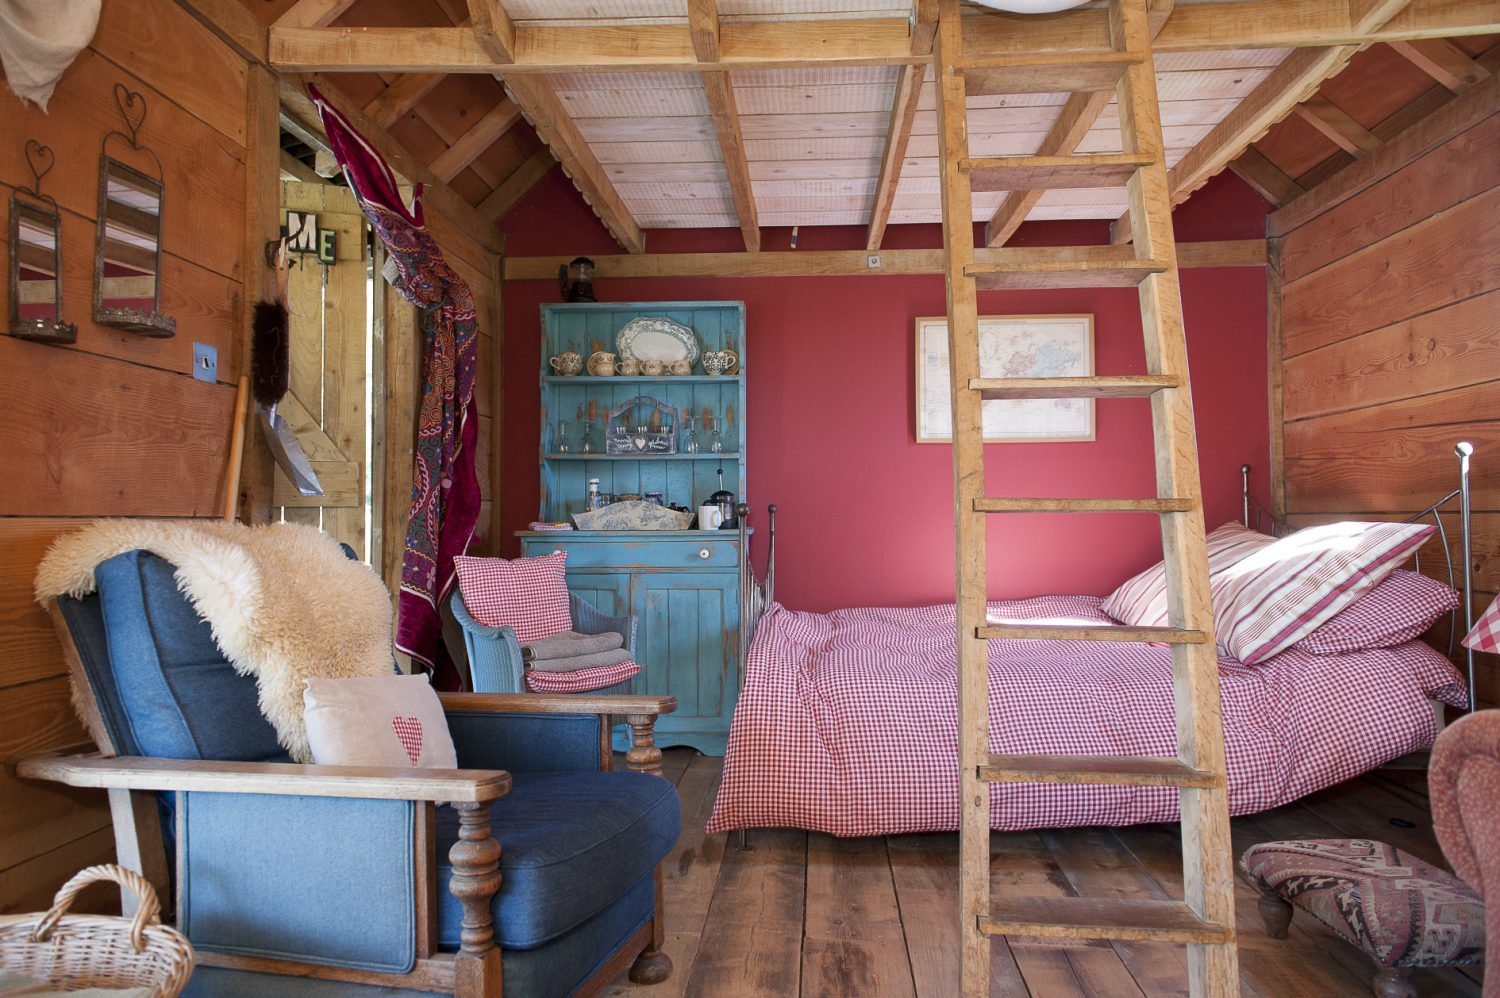 A mezzanine bed reached via a rustic ladder, above the main sleeping area, offers a fun place for children to sleep. When not lounging around, guests can fish – or cook themselves a full English breakfast on the deck – using ingredients from the farm